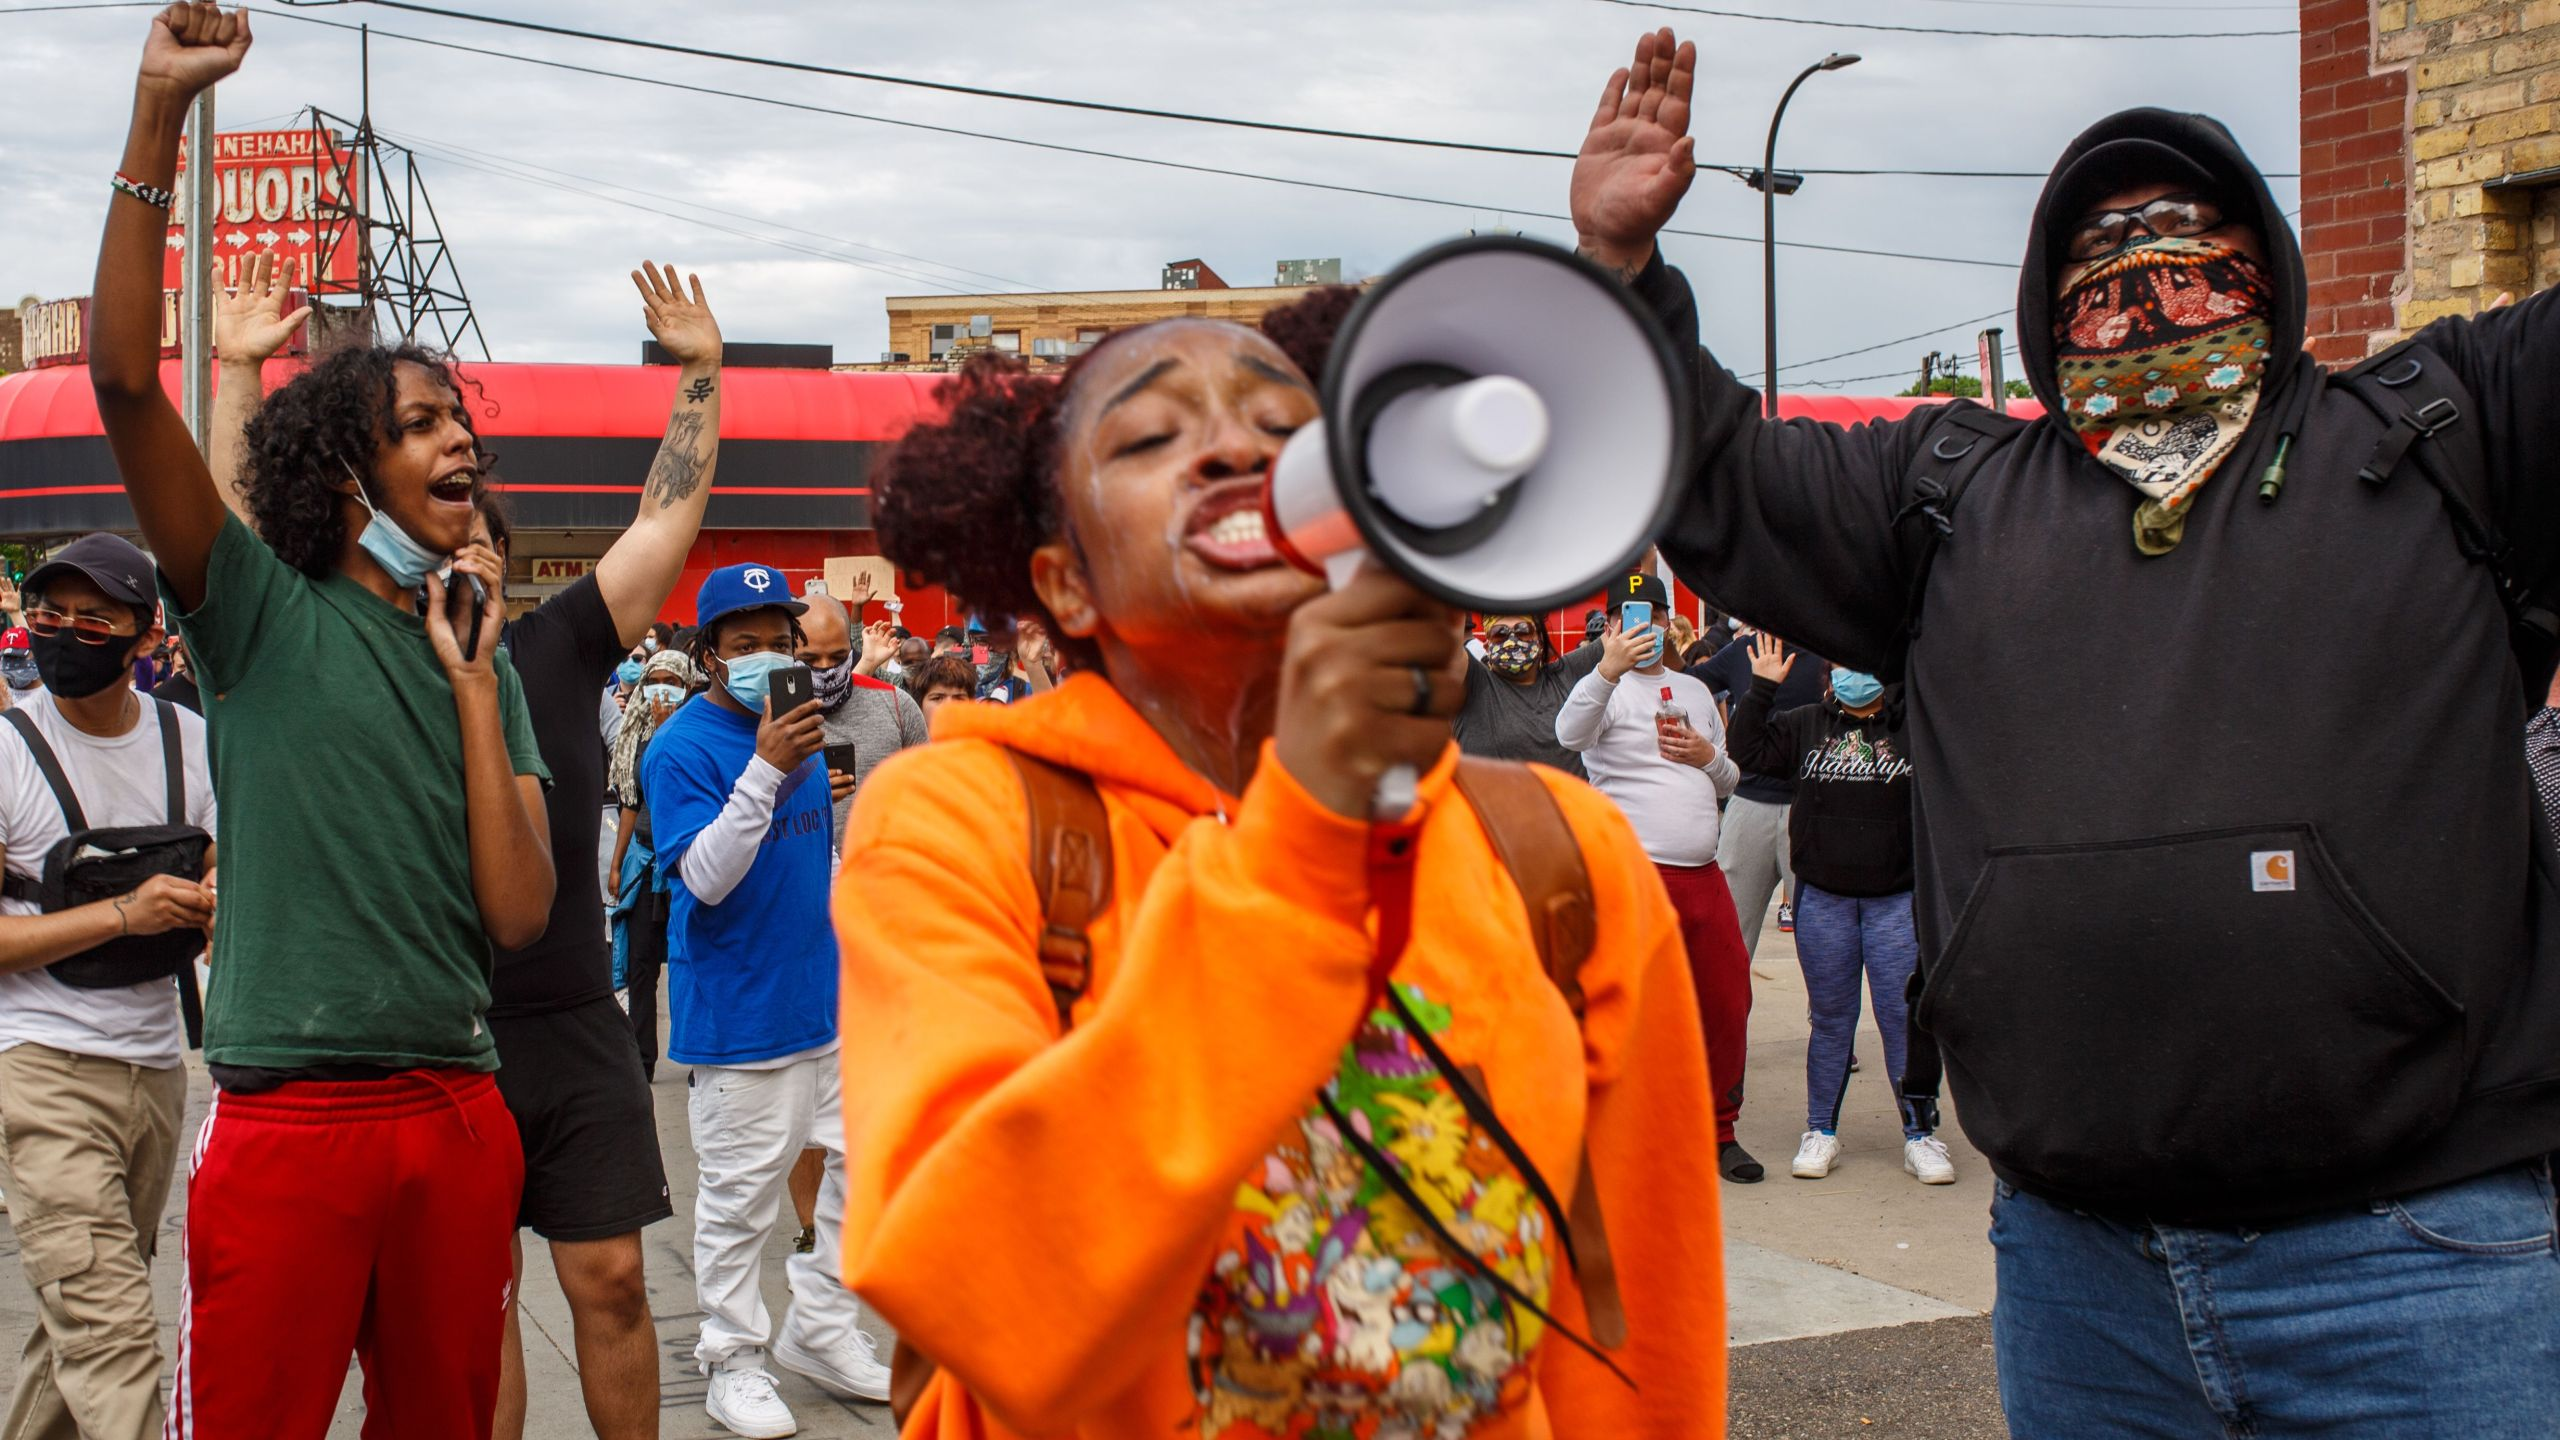 Protesters demonstrate against the death of George Floyd outside the Third Police Precinct in Minneapolis, Minnesota, on May 27, 2020. (Kerem Yucel / AFP / Getty Images)